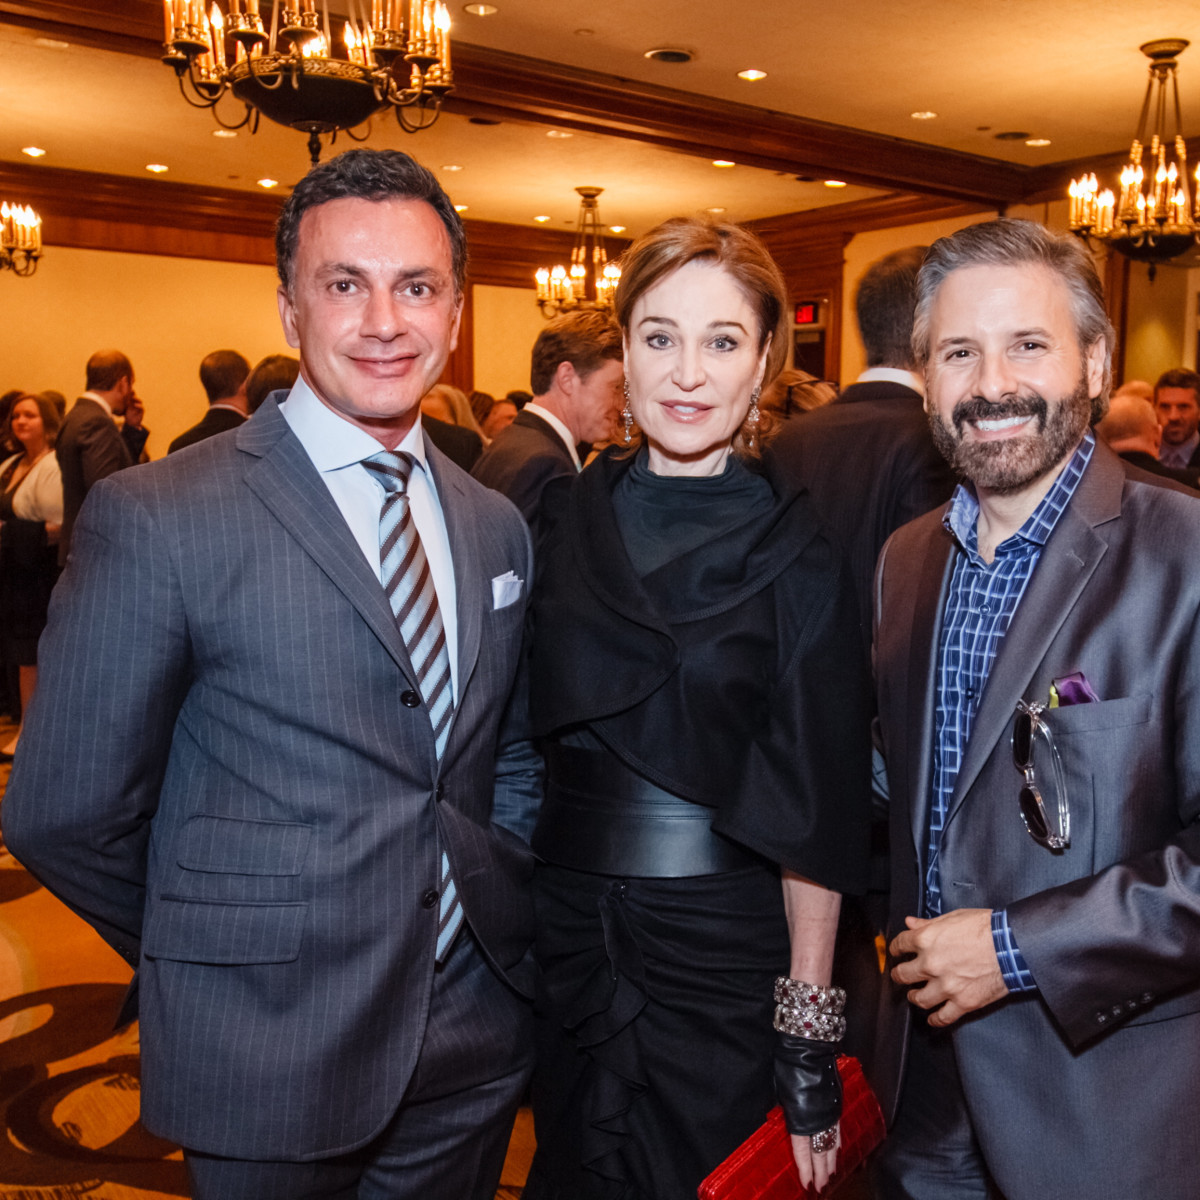 World AIDS Day luncheon Monsour Taghdisi, Becca Cason Thrash, Ernie Manouse